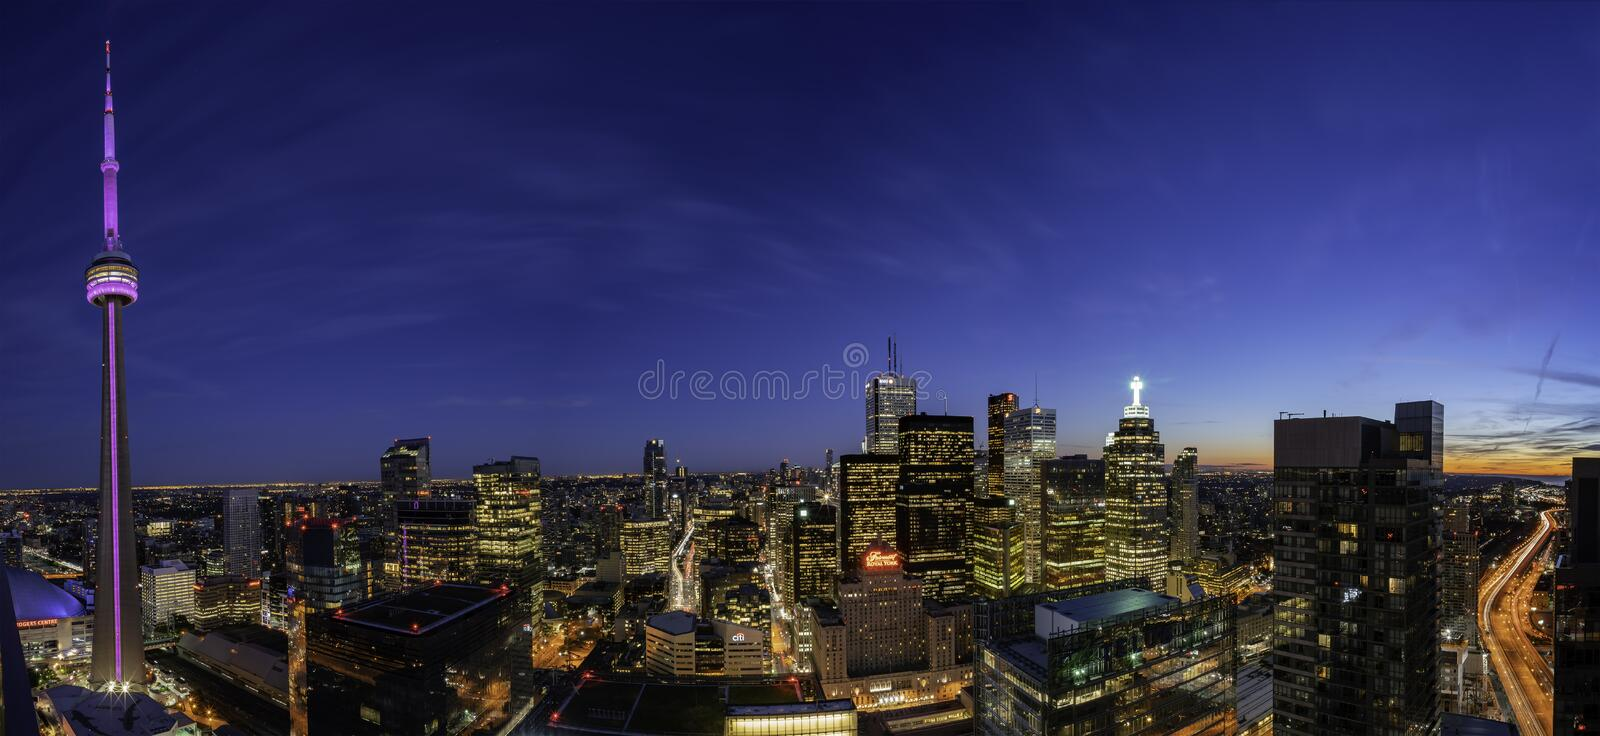 Aerial dawn view of the Toronto downtown cityscape with CN Tower. Toronto, SEP 29: Aerial dawn view of the downtown cityscapecityscape with CN Tower on SEP 29 royalty free stock image